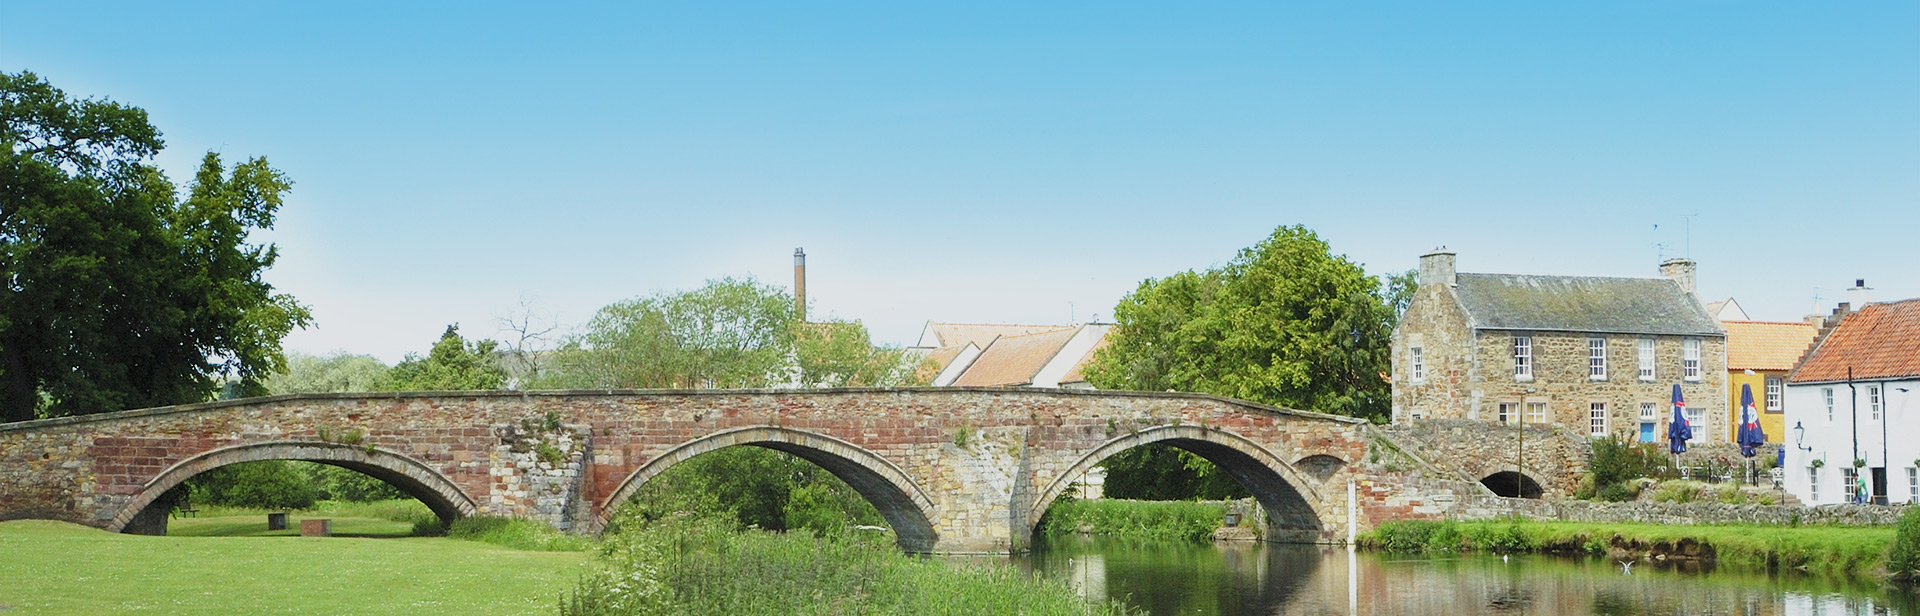 Bridge over the River Tyne in Haddington